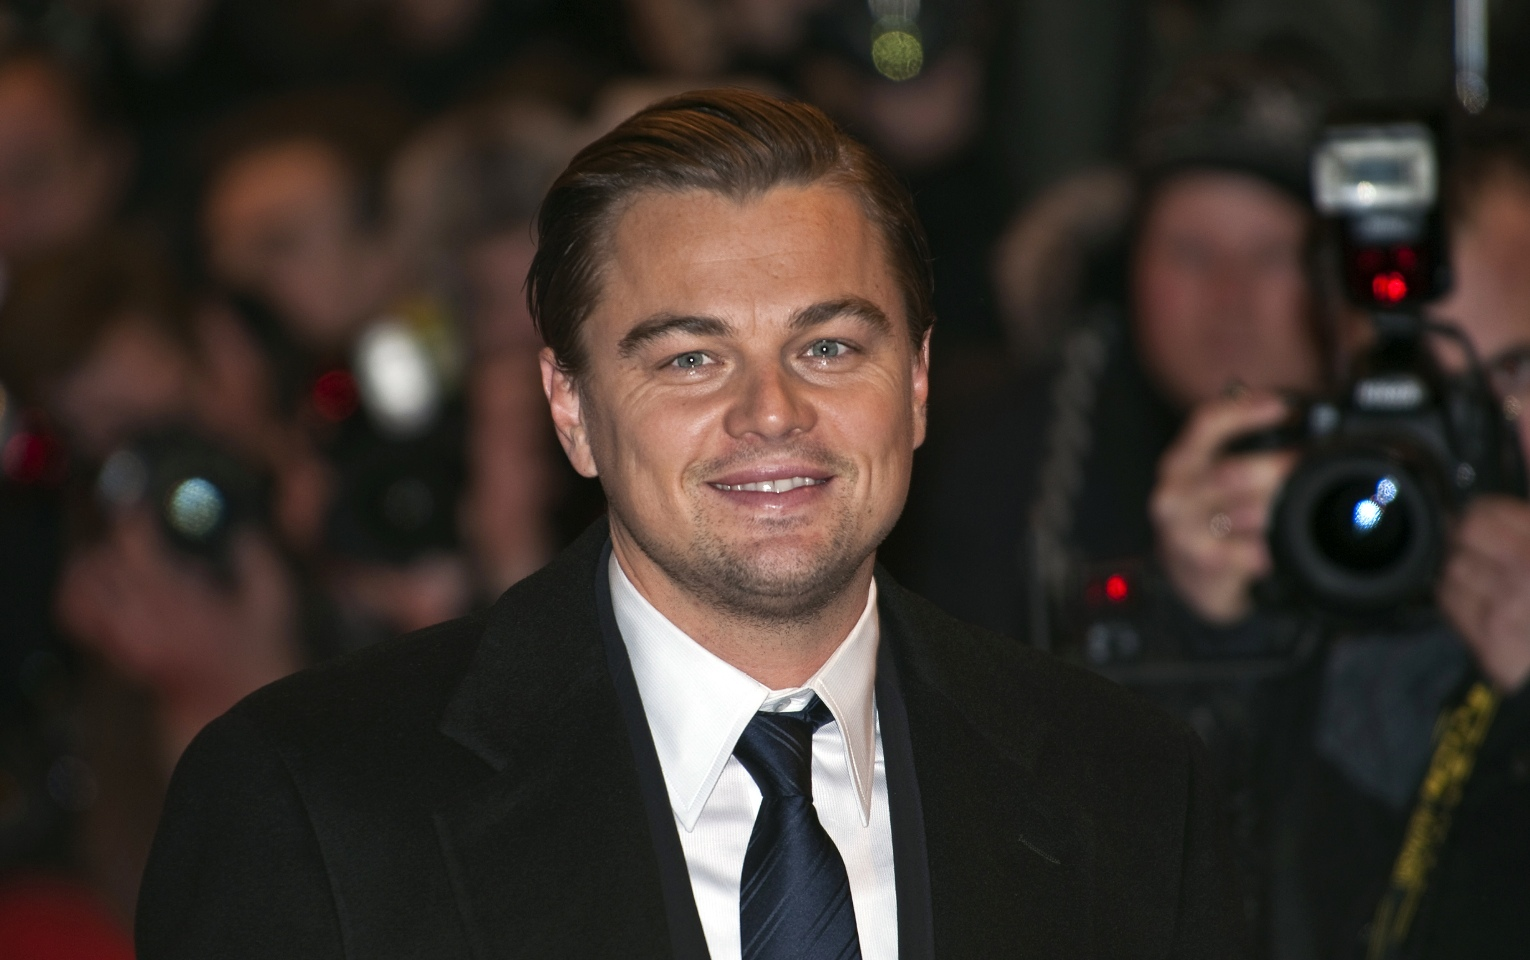 Actor Leonardo DiCaprio at an event